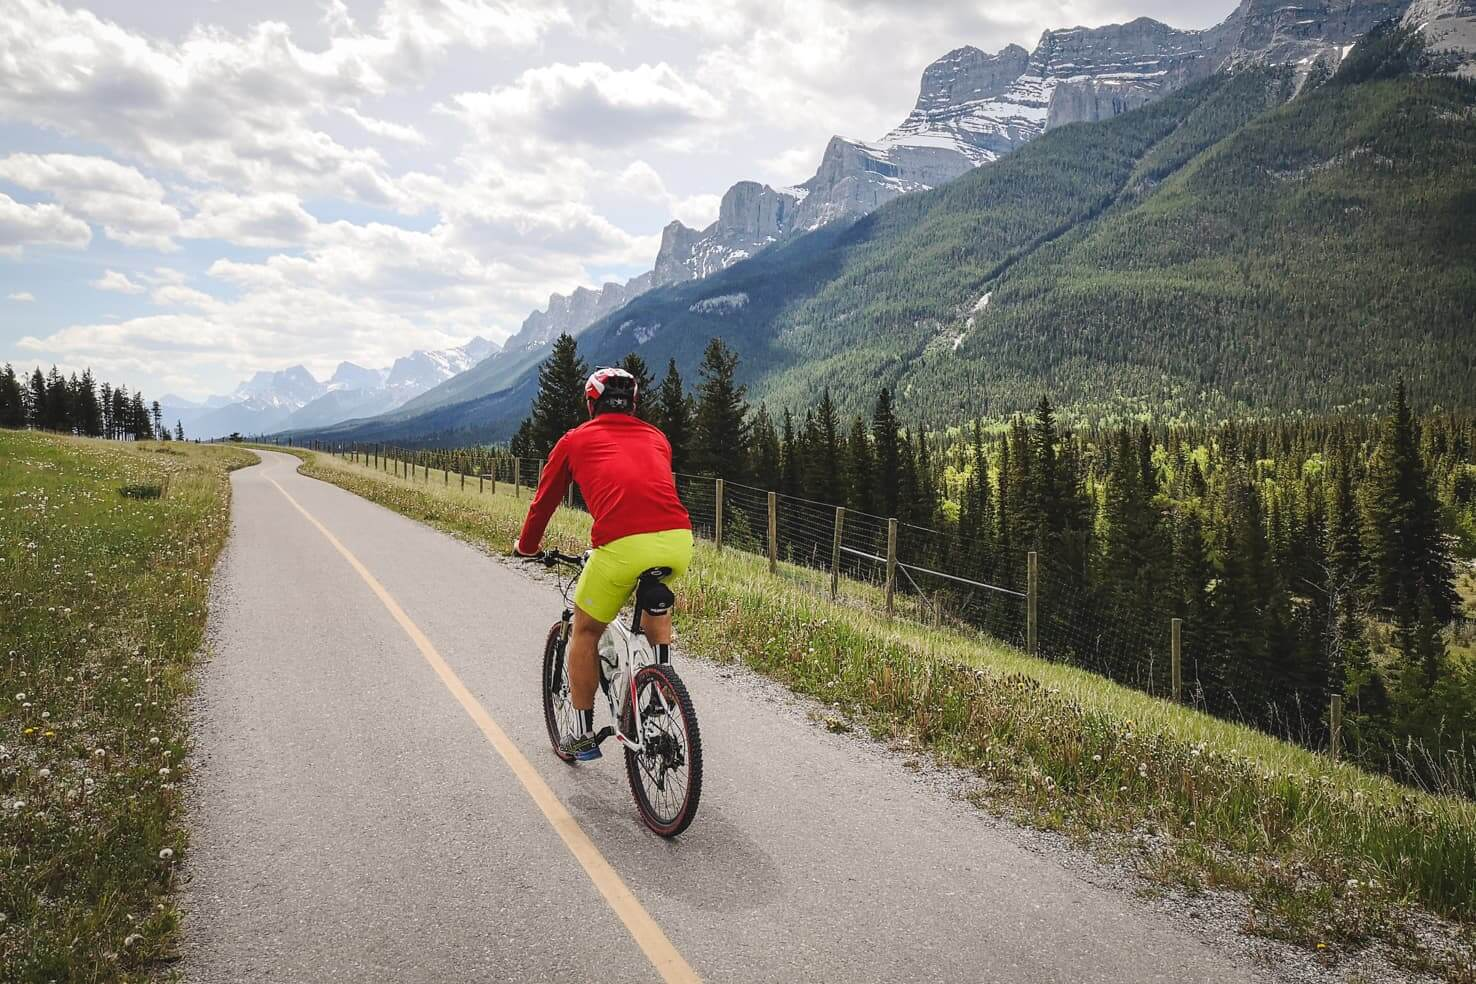 20 Things to do in Canmore - Bike the Legacy Trail to Banff